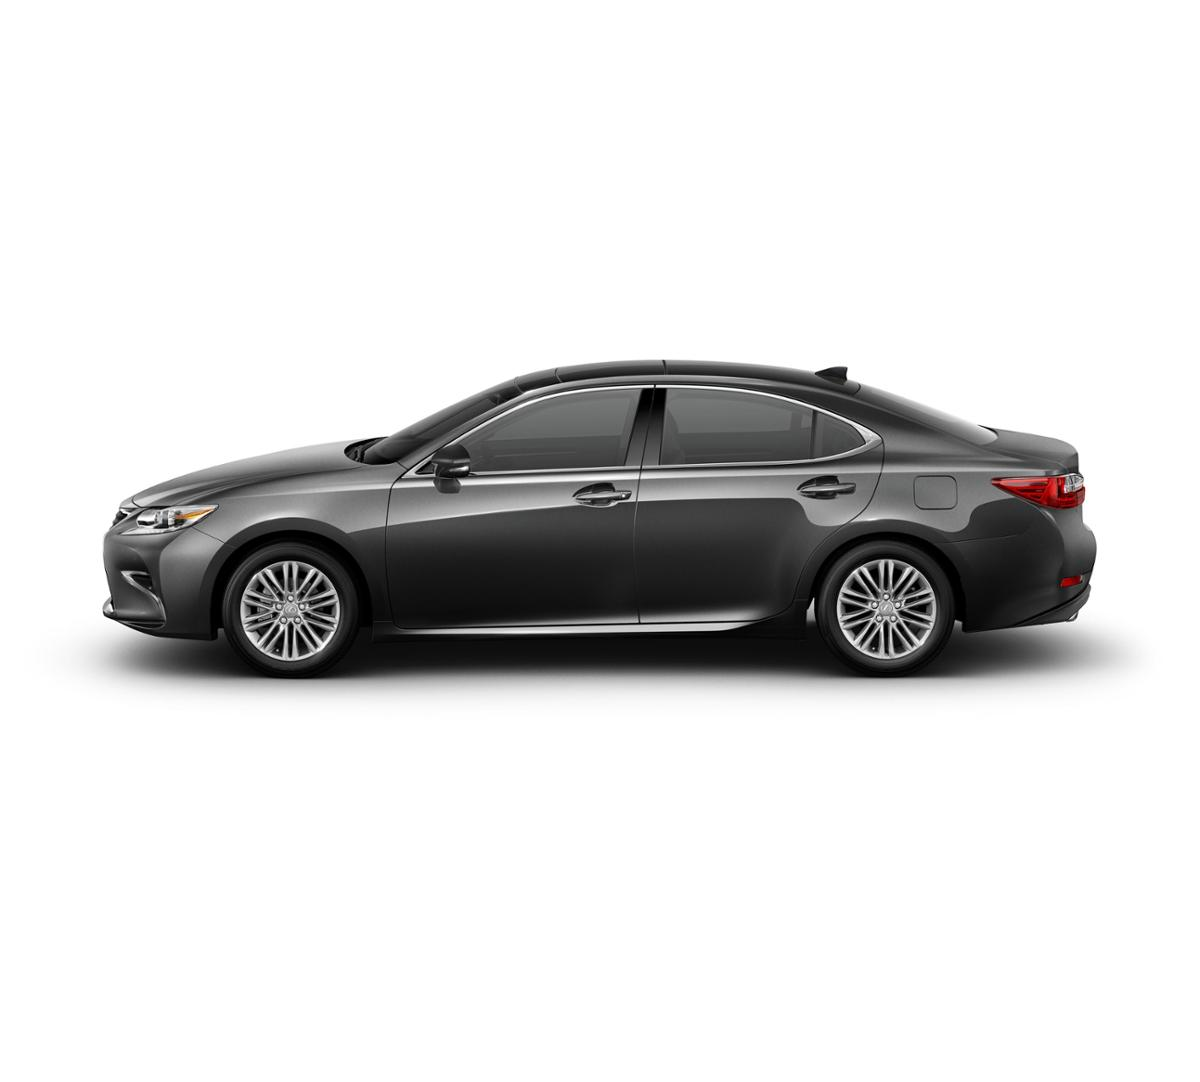 2016 lexus es 350 nebula gray pearl r166496 lexus of rockville centre. Black Bedroom Furniture Sets. Home Design Ideas